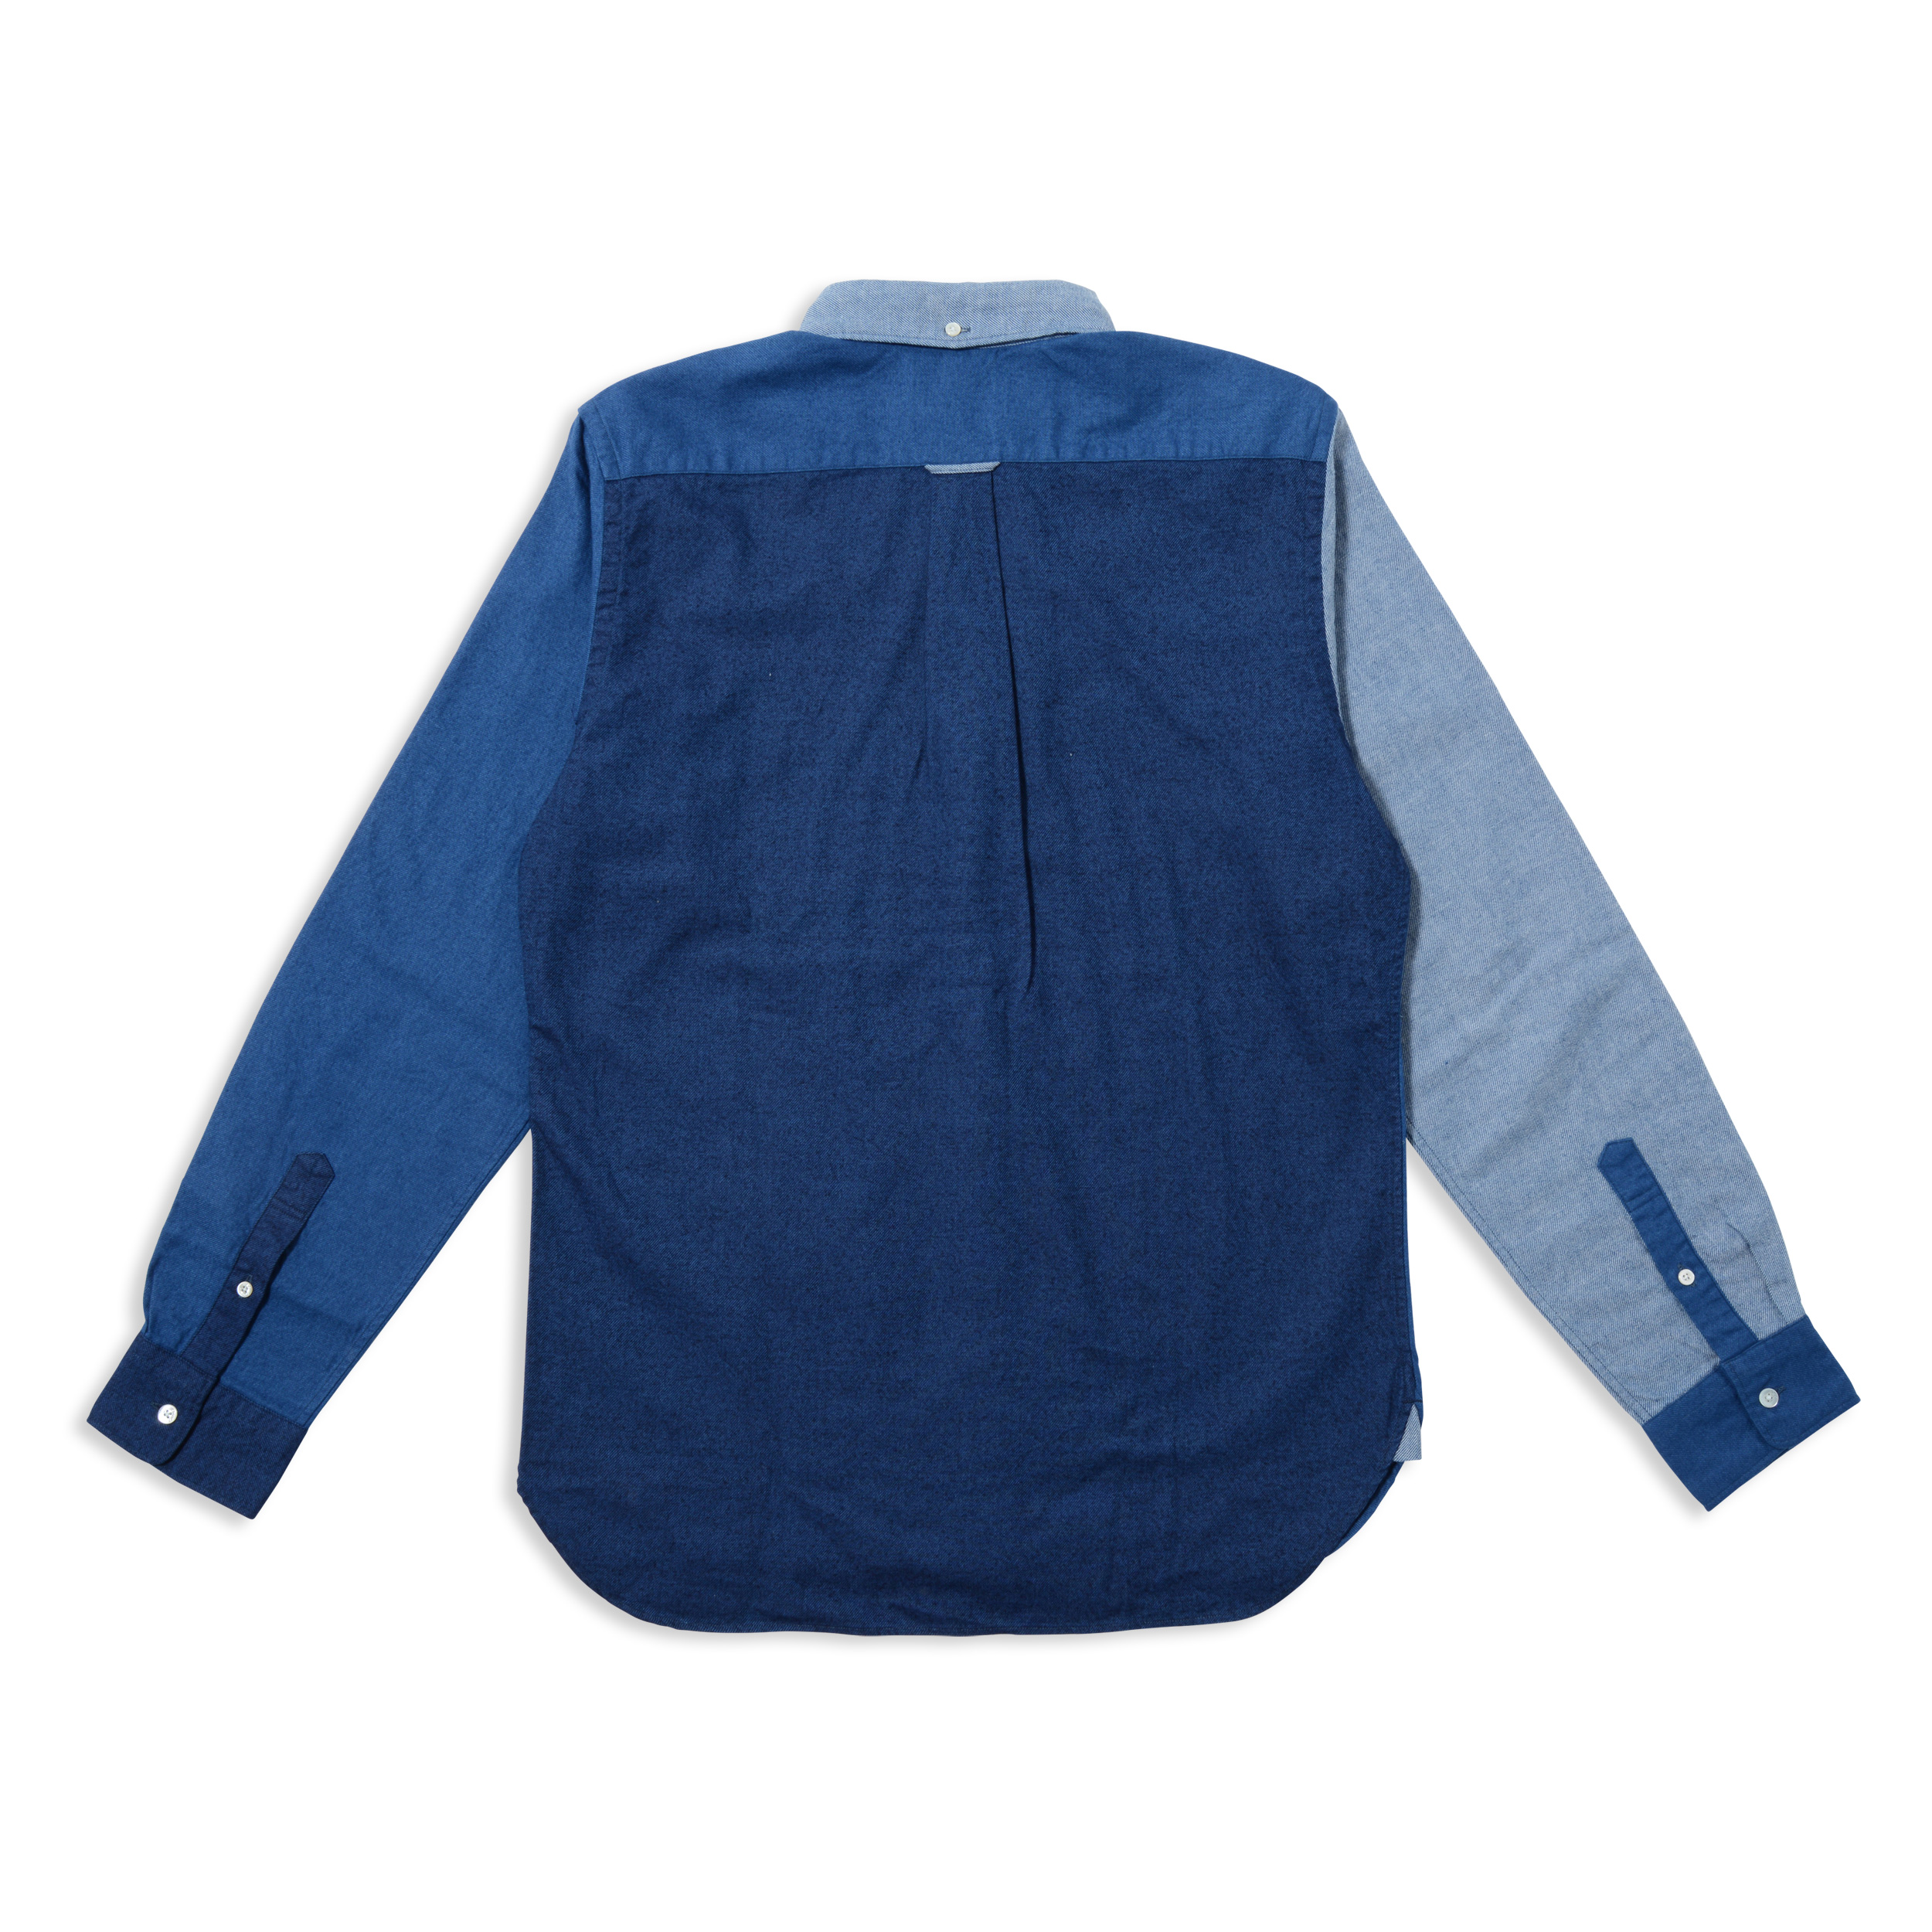 INDIGO CRAZY BD SHIRT(1703)